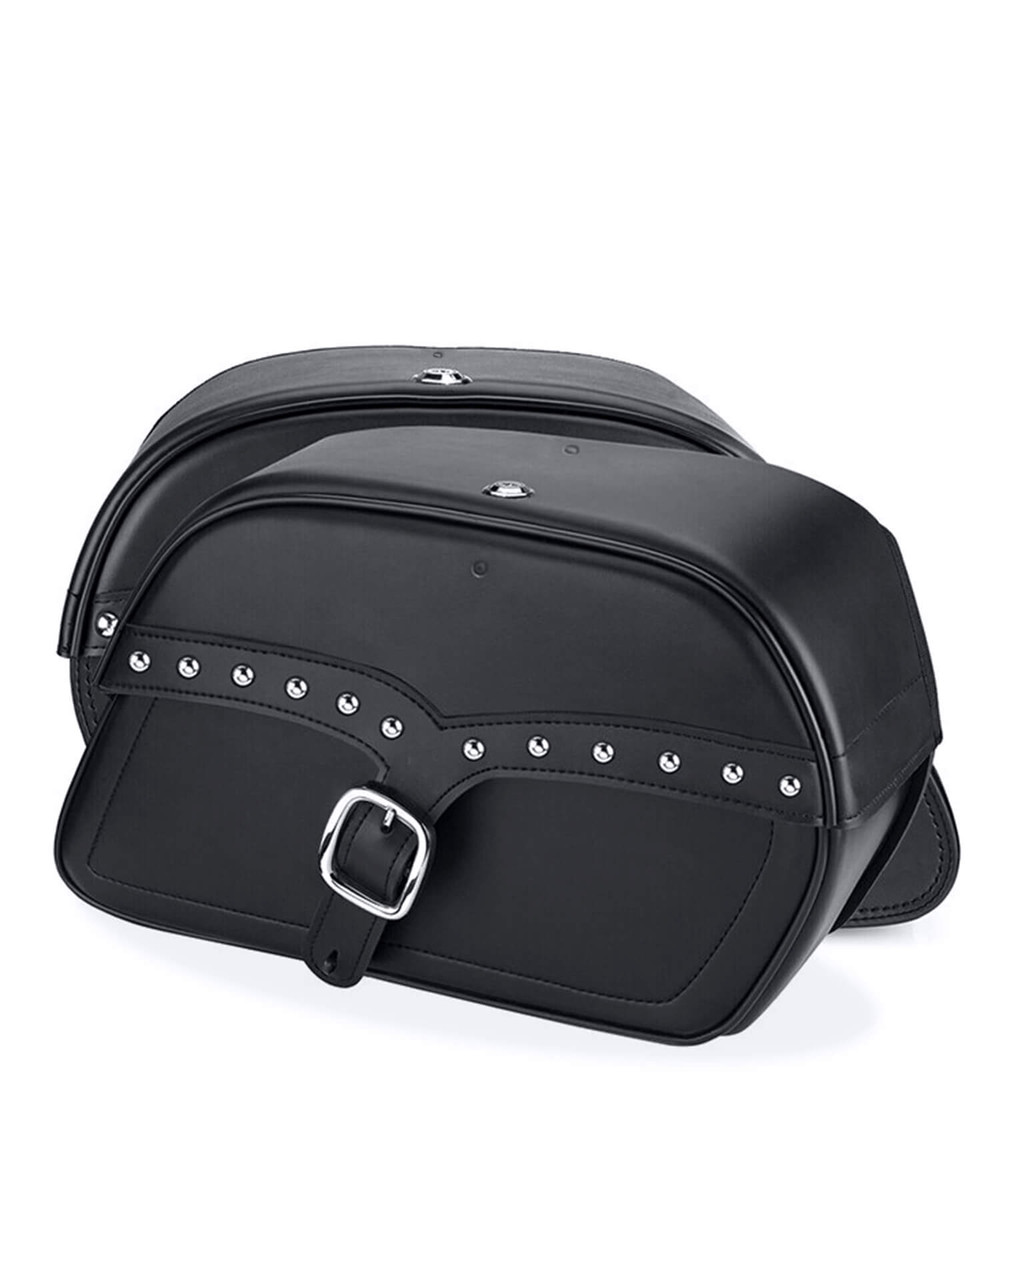 Victory Judge Charger Single Strap Studded Motorcycle Saddlebags Both Bags View